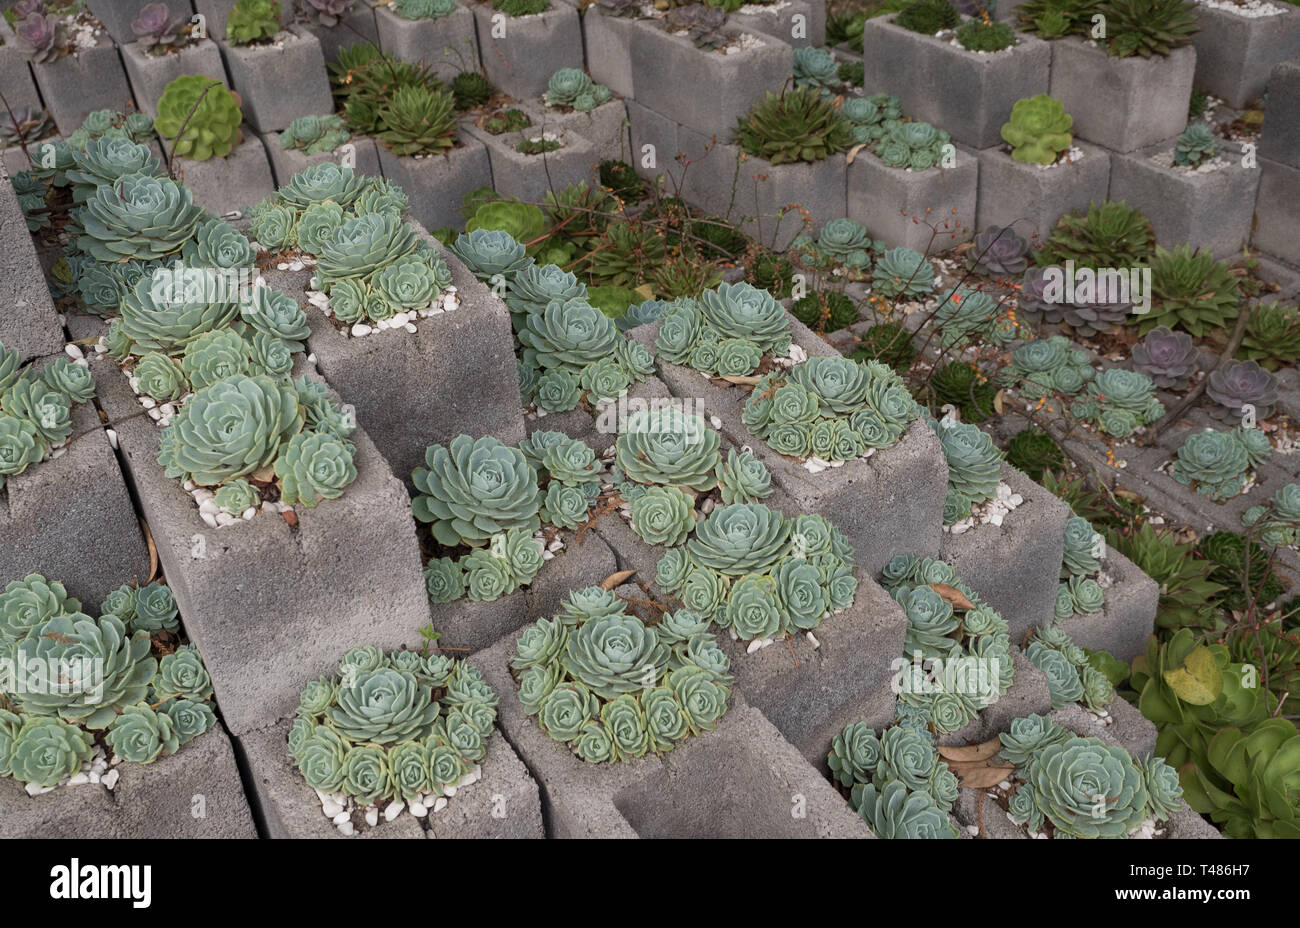 Cinder Block Garden High Resolution Stock Photography And Images Alamy